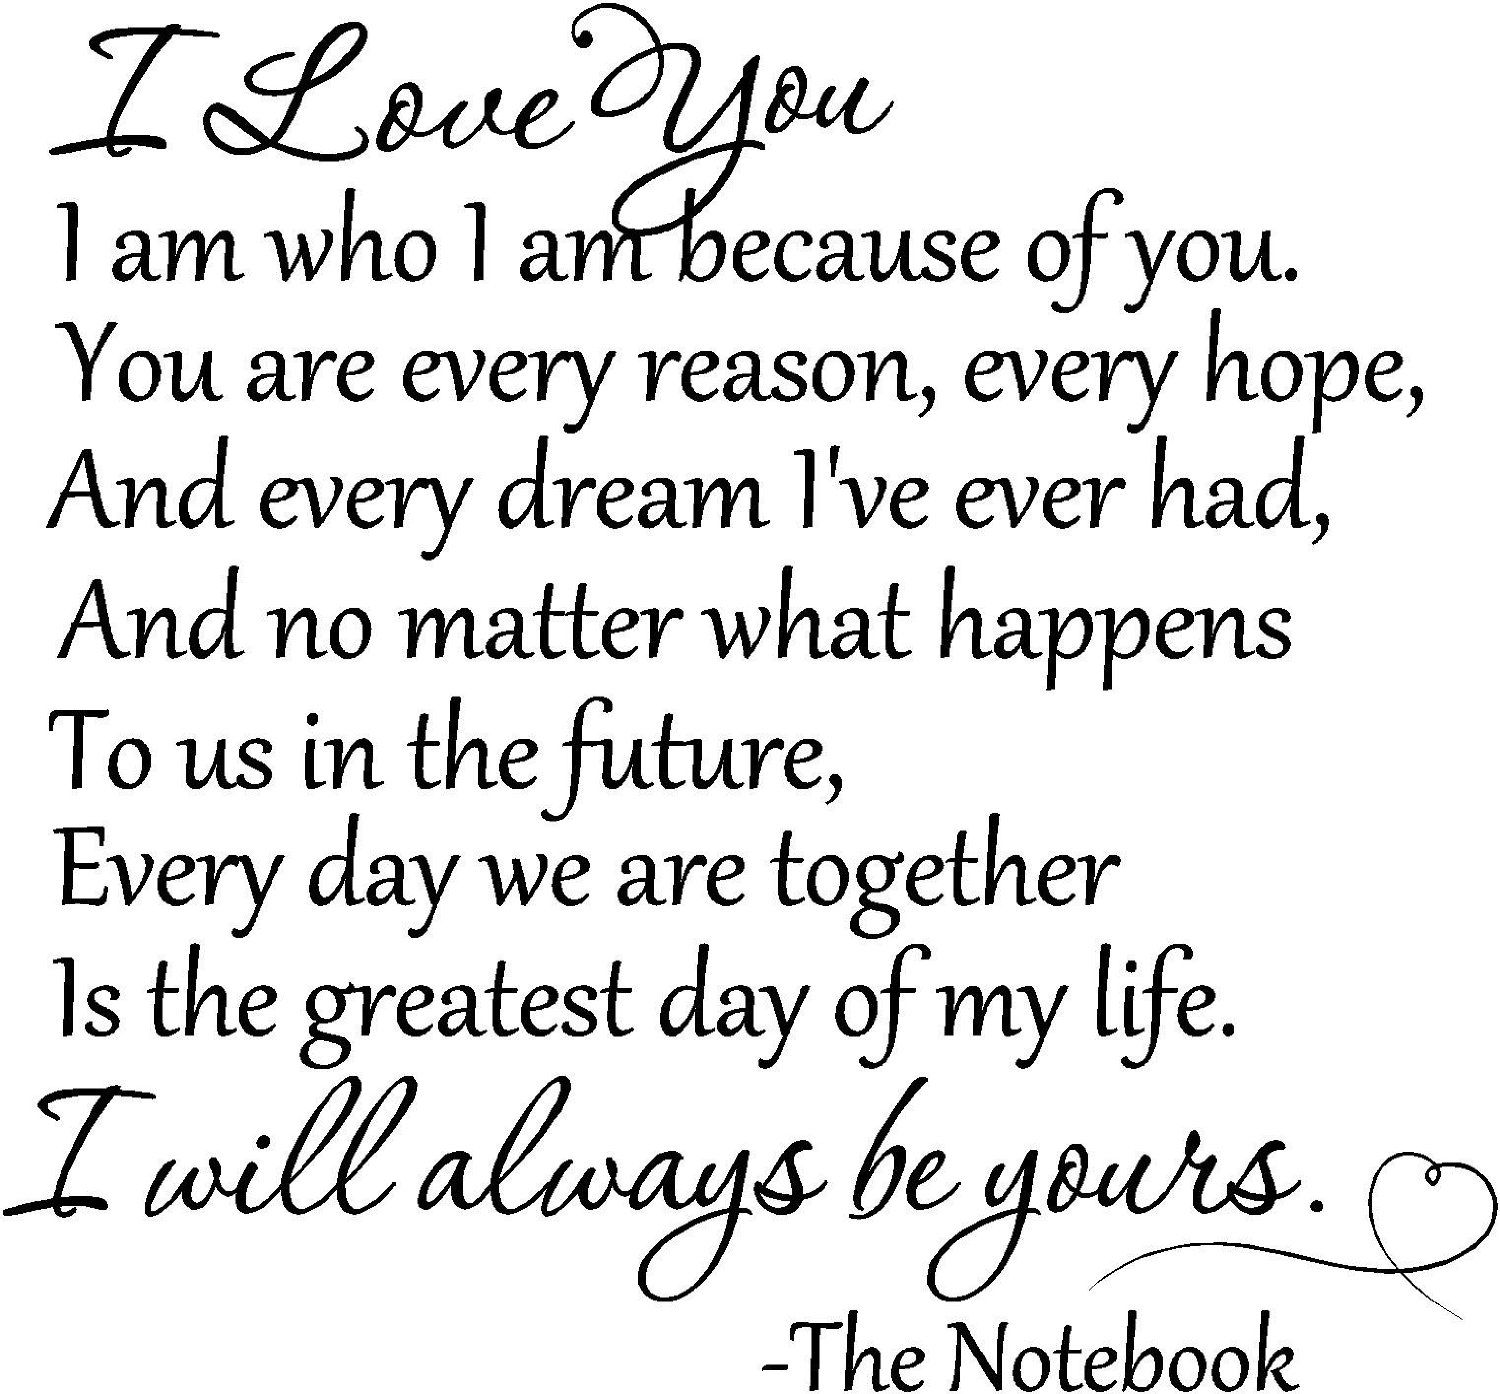 I will always love you P I truly am who I am because